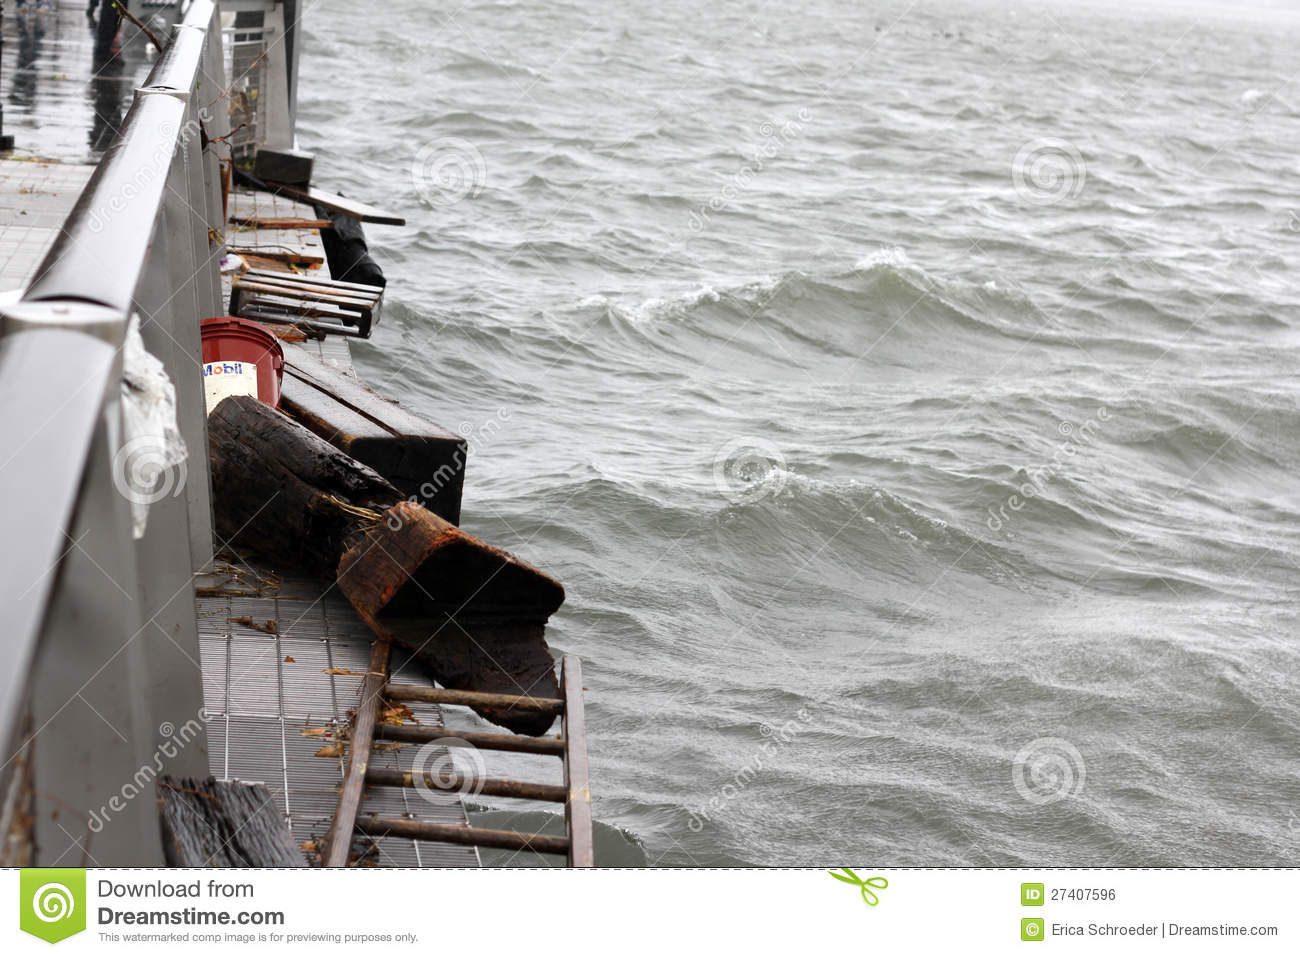 Image Gallery of Hurricane Sandy Clipart.